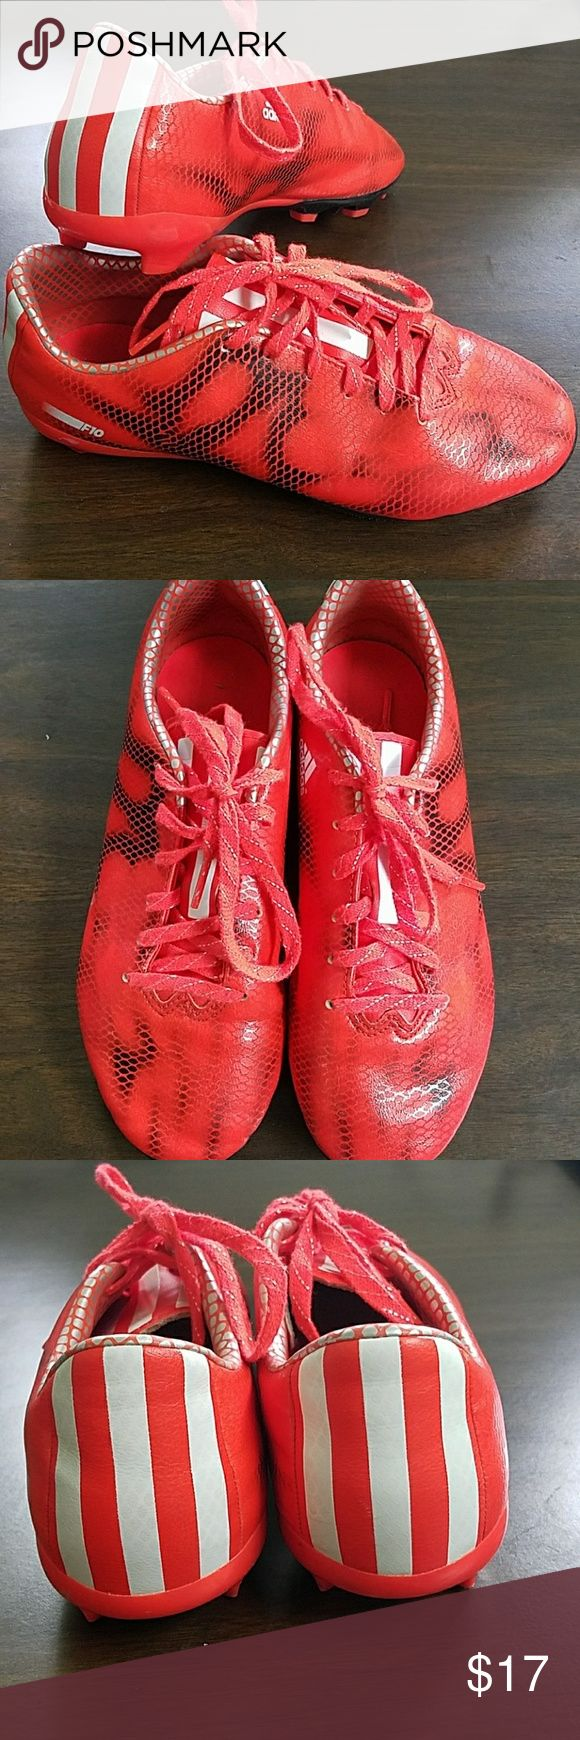 Adidas F10 soccer cleats youth size 5 and a half Make a statement on the soccer field with these bright orange soccer cleats!   used but in great condition, very clean and ready for the fall season! adidas Shoes